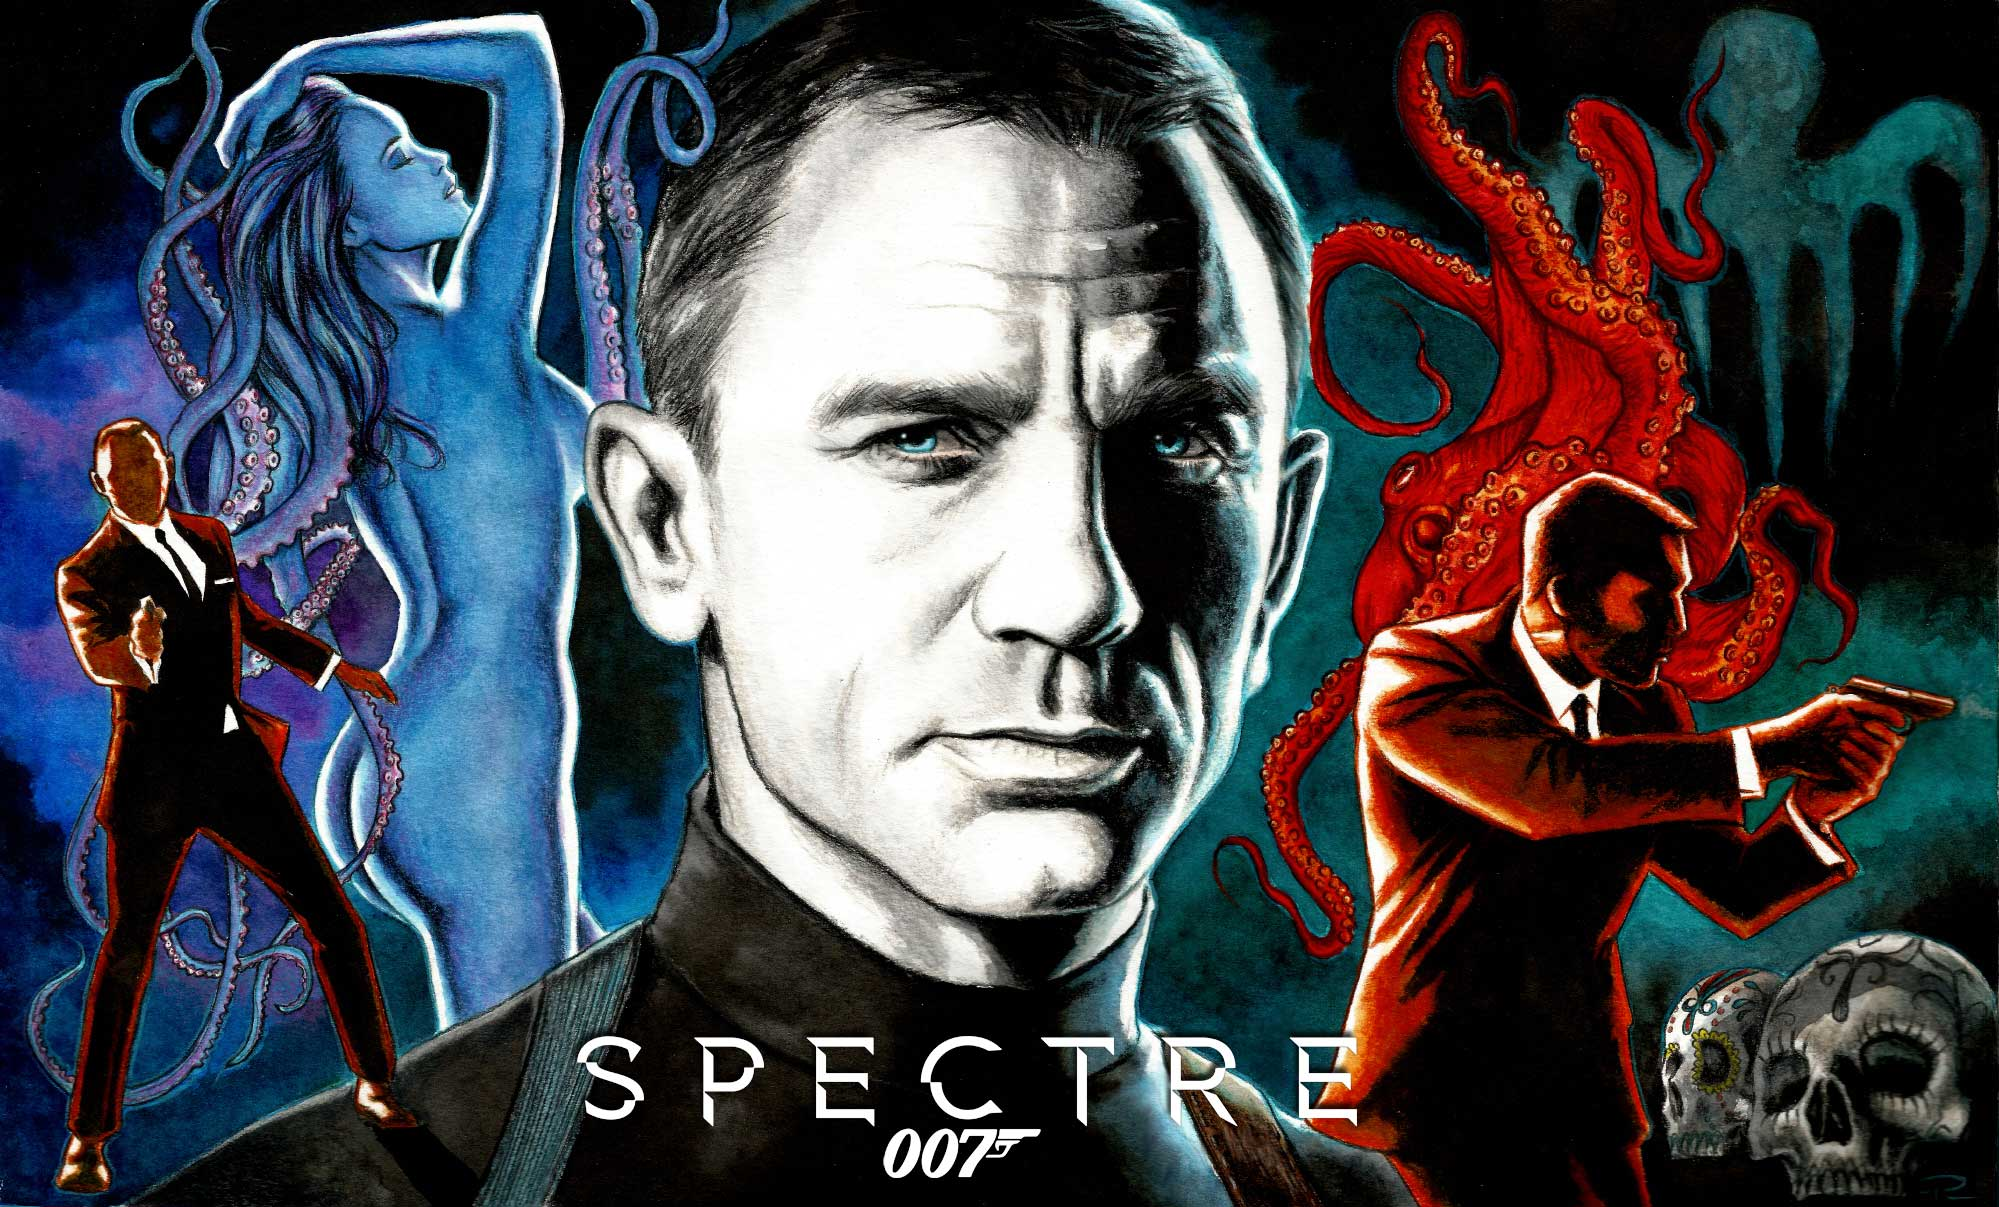 spectre fan art work James Bond illustrations